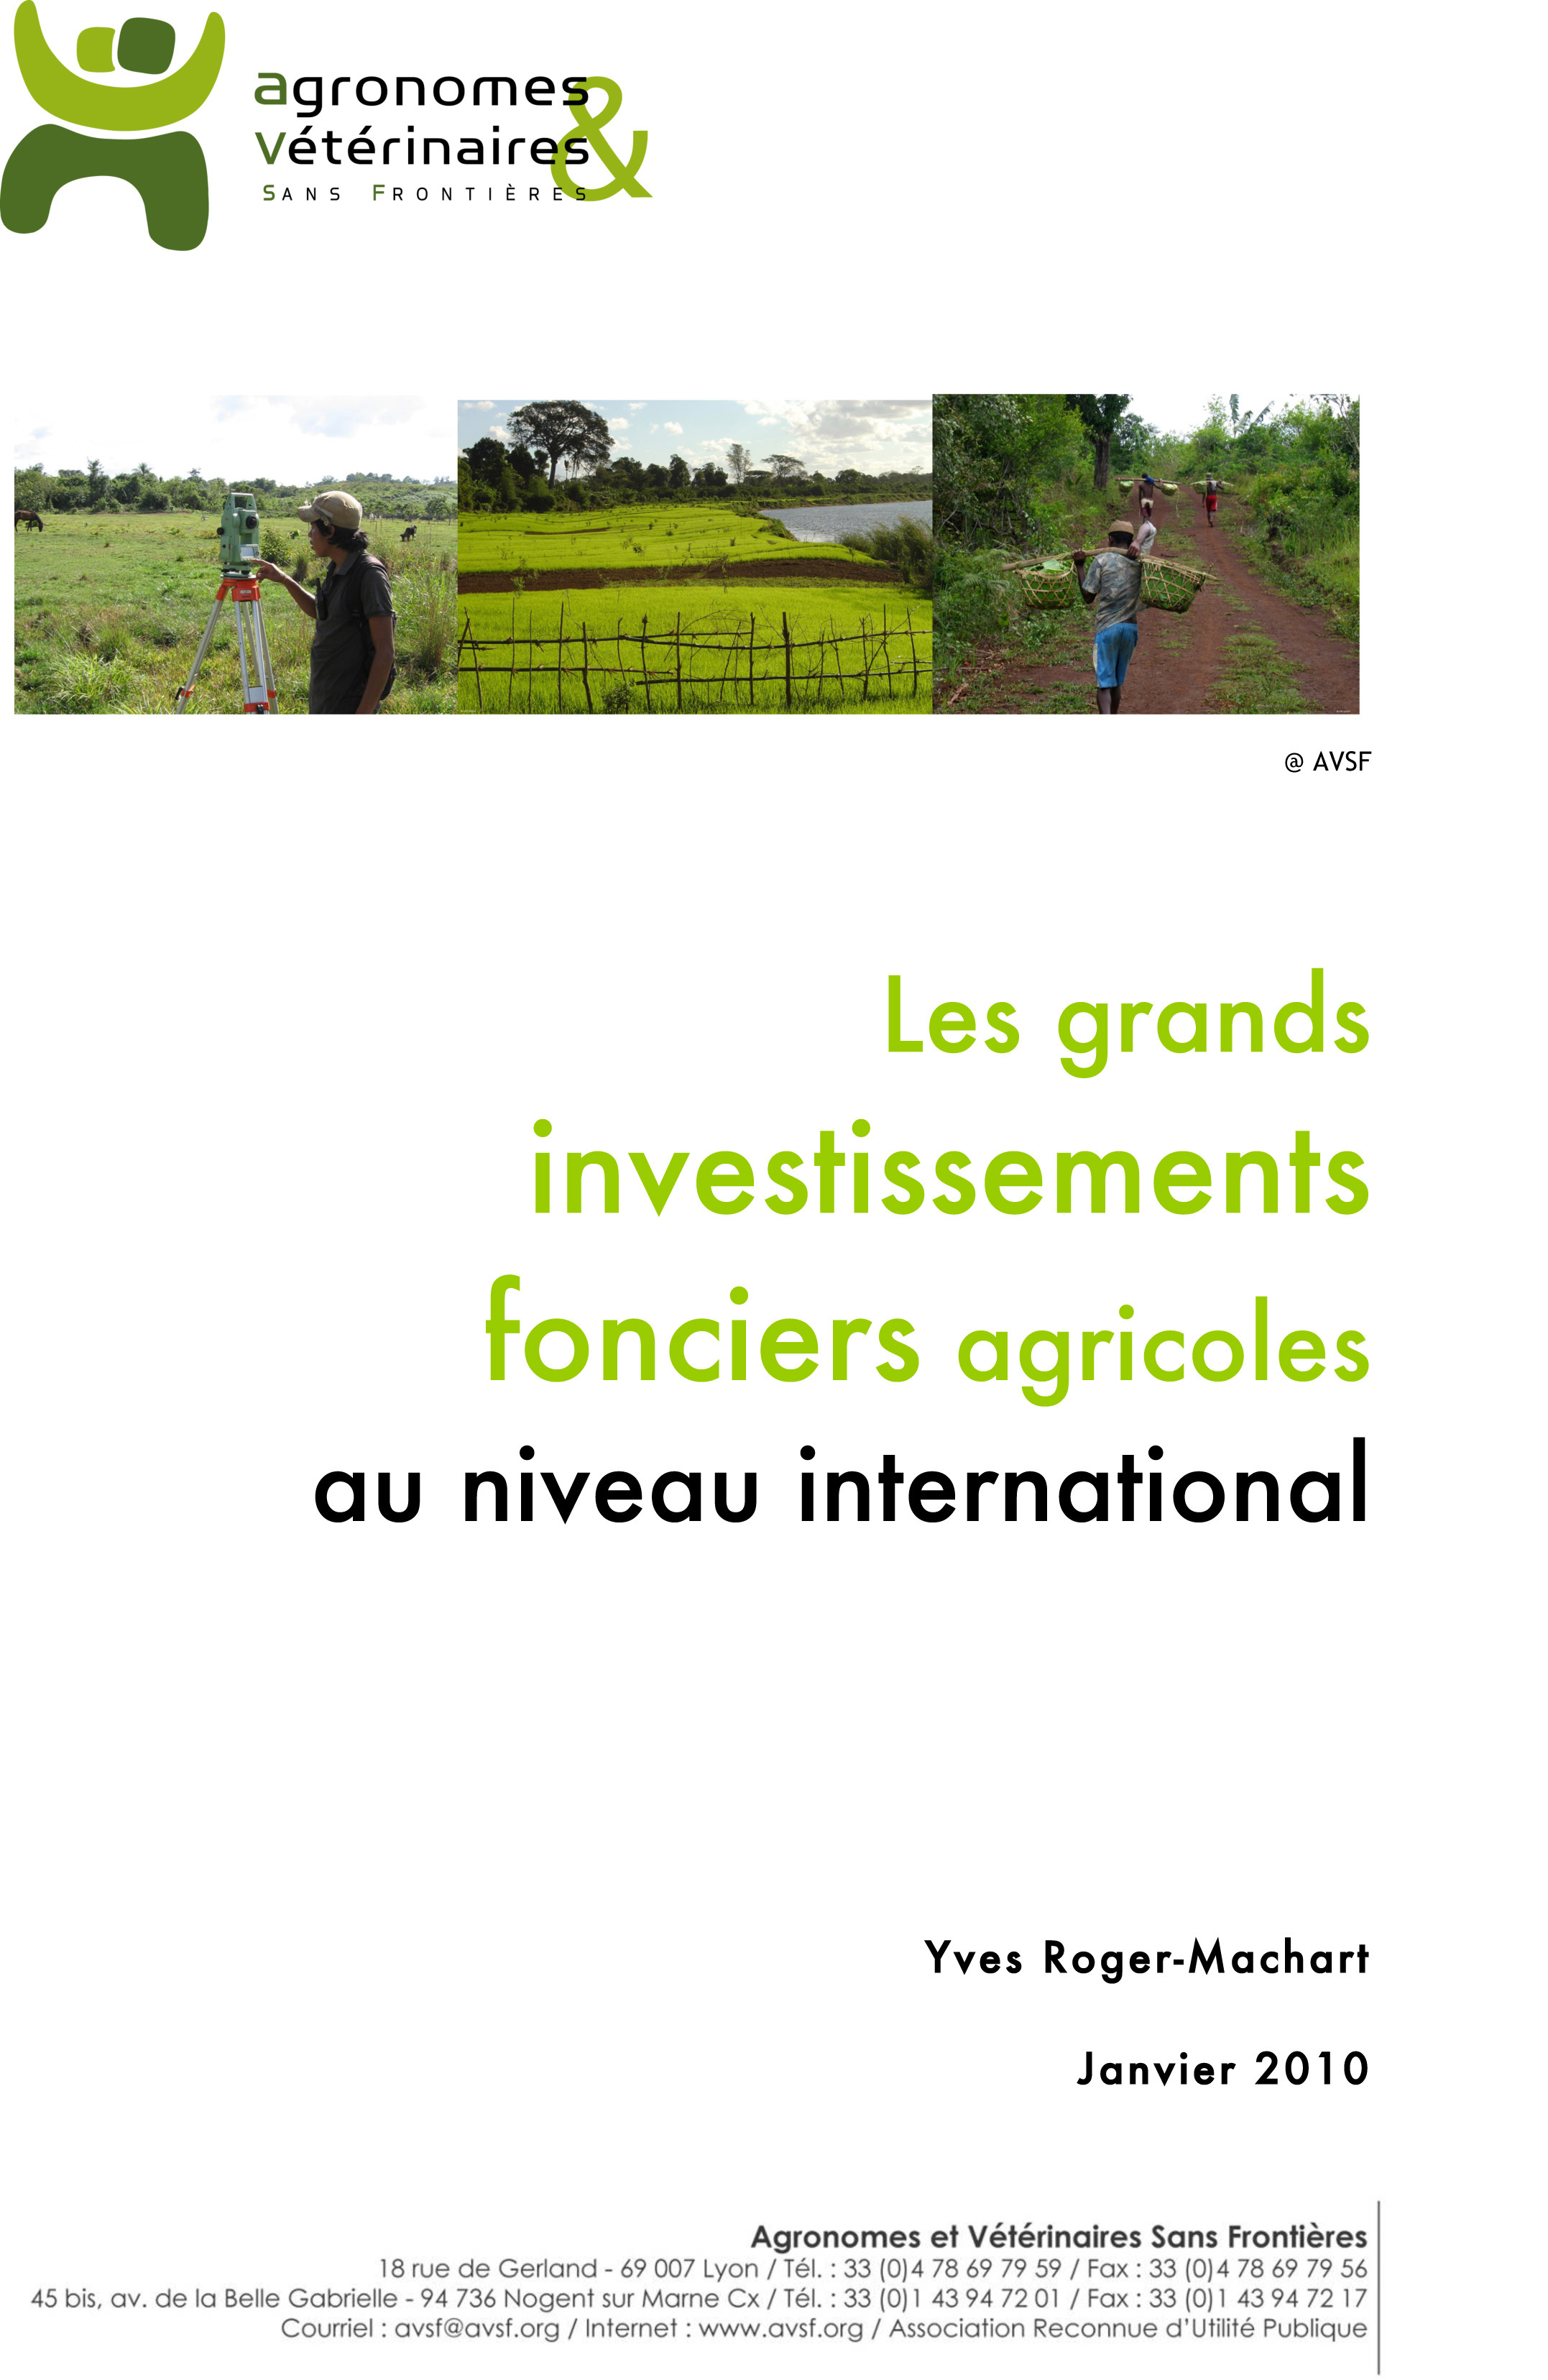 Thumbnail - Les grands investissements fonciers au niveau international